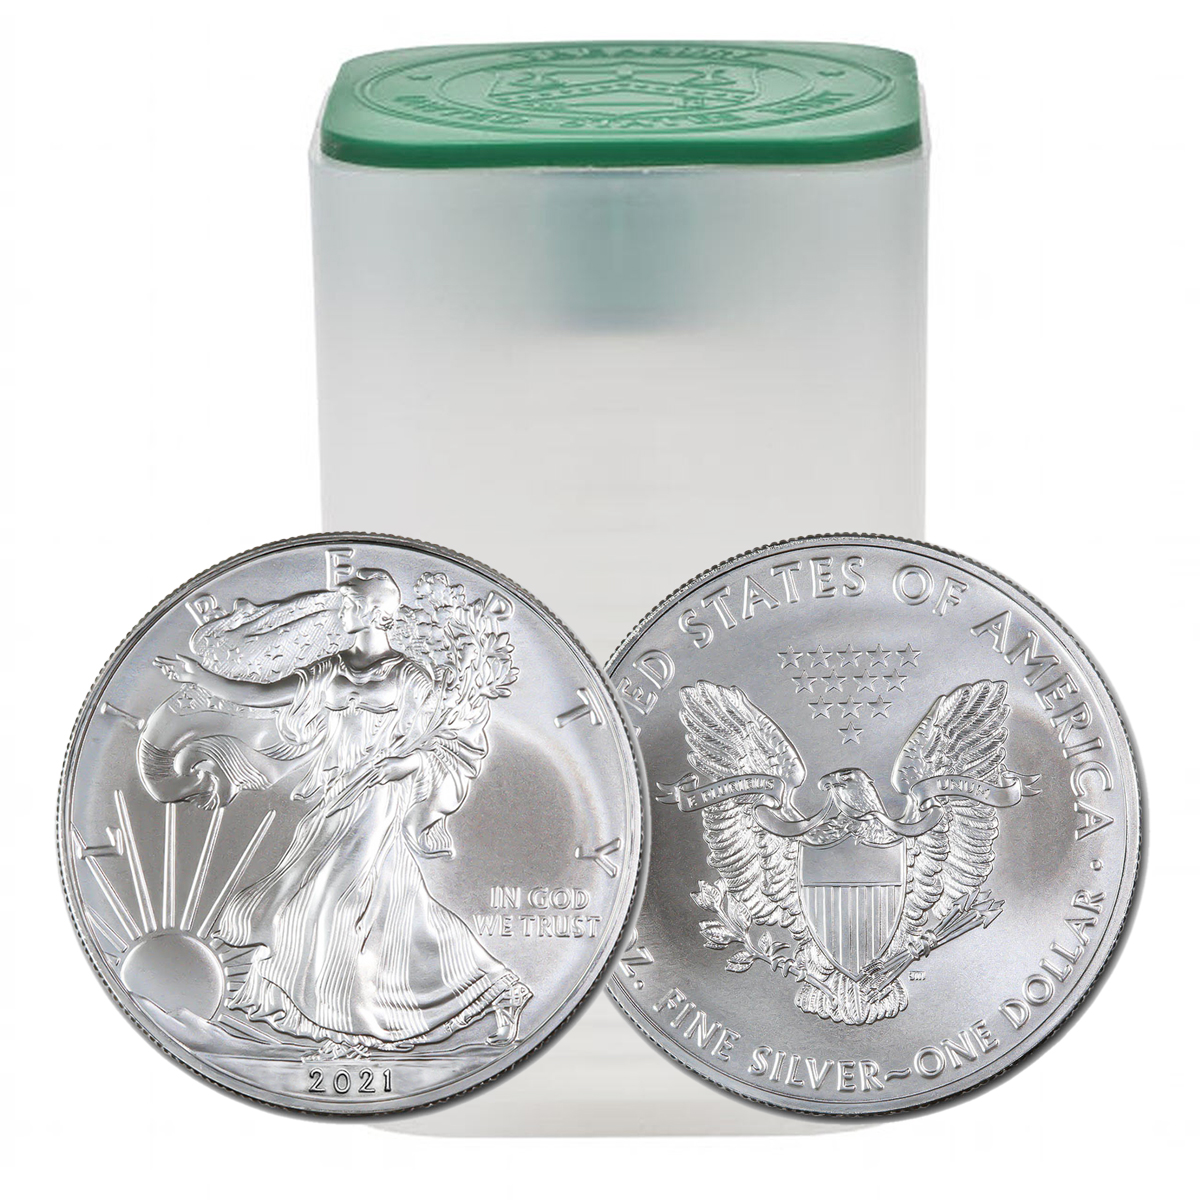 2021 Silver Eagle Type 1 Roll of 20 Uncirculated Coins